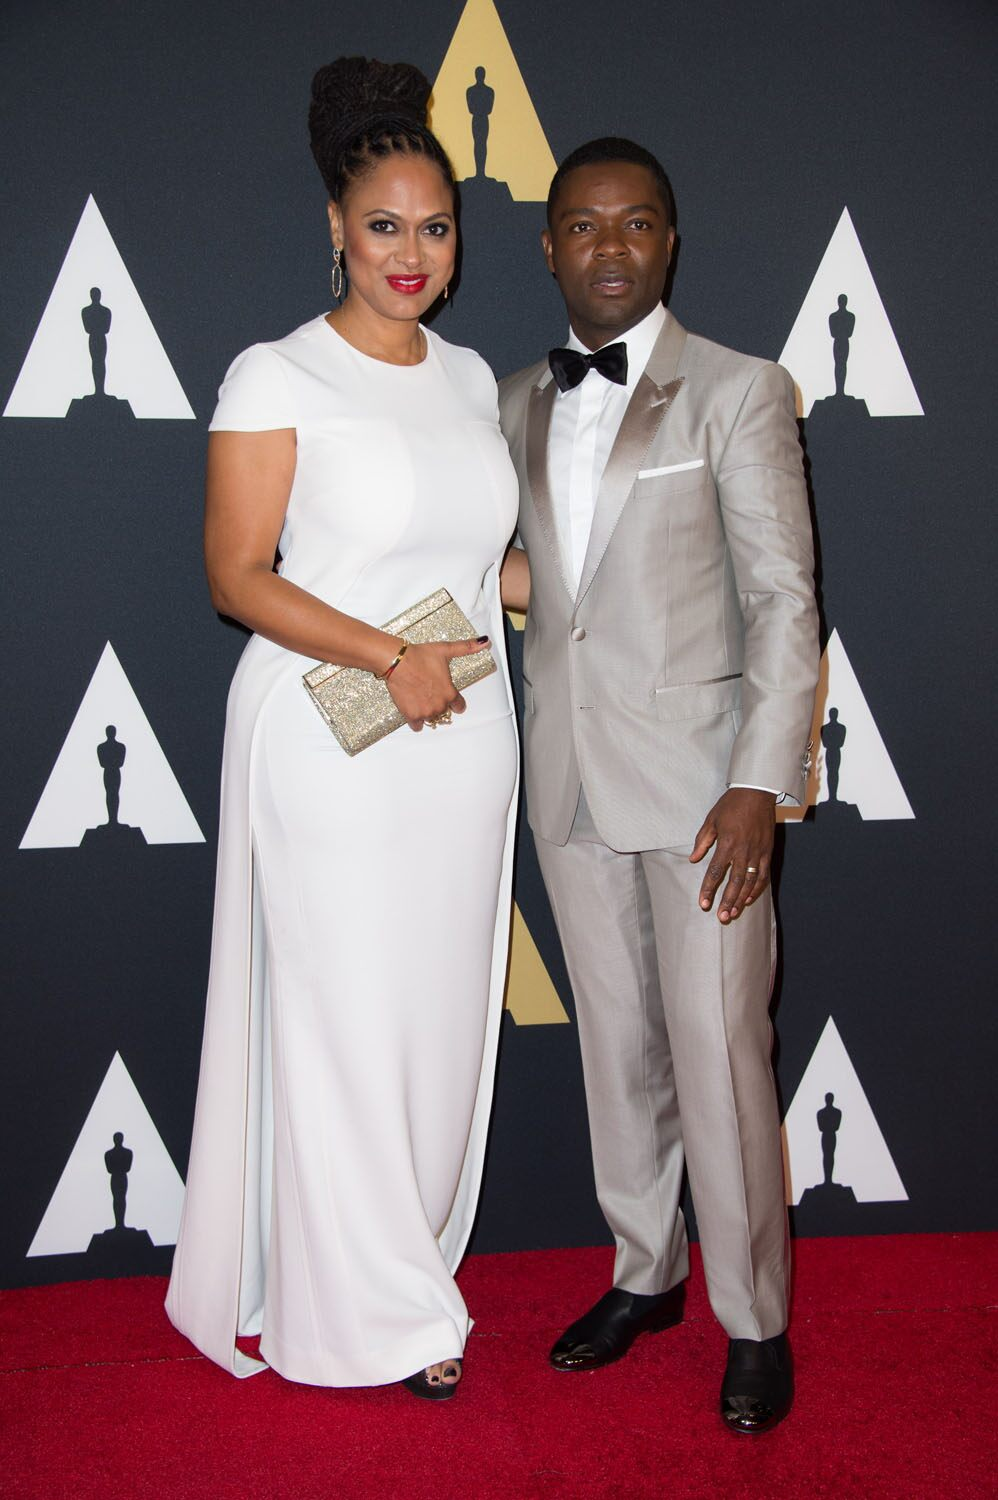 Ava DuVernay (left) and David Oyelowo at the 6th Annual Governors Awards